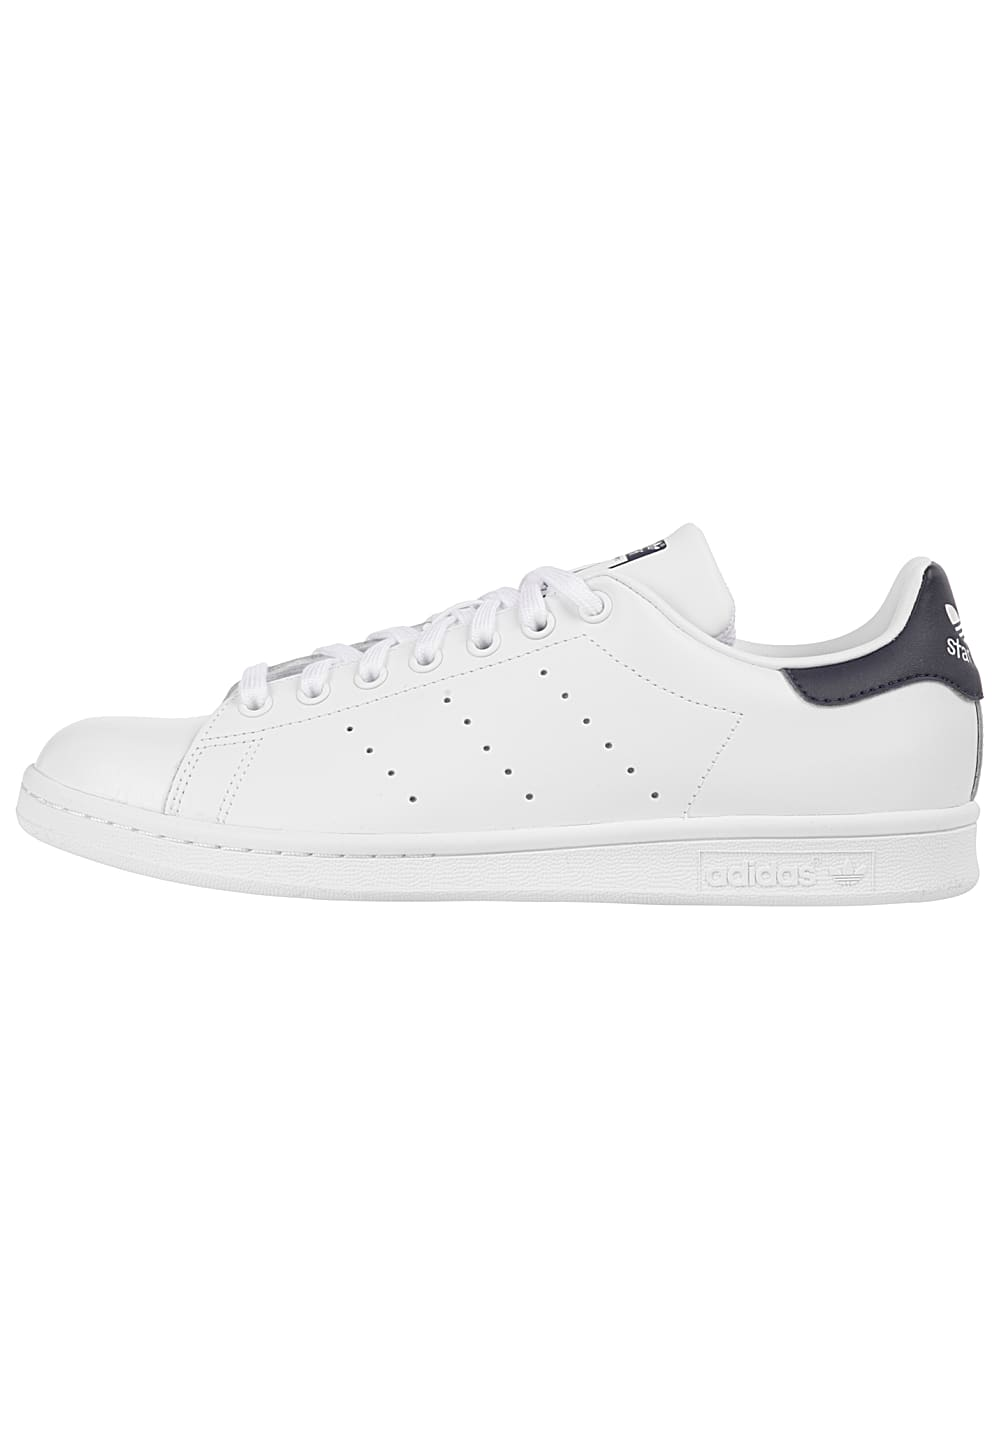 detailed pictures 1639d 1d476 ADIDAS ORIGINALS Stan Smith - Sneakers - White